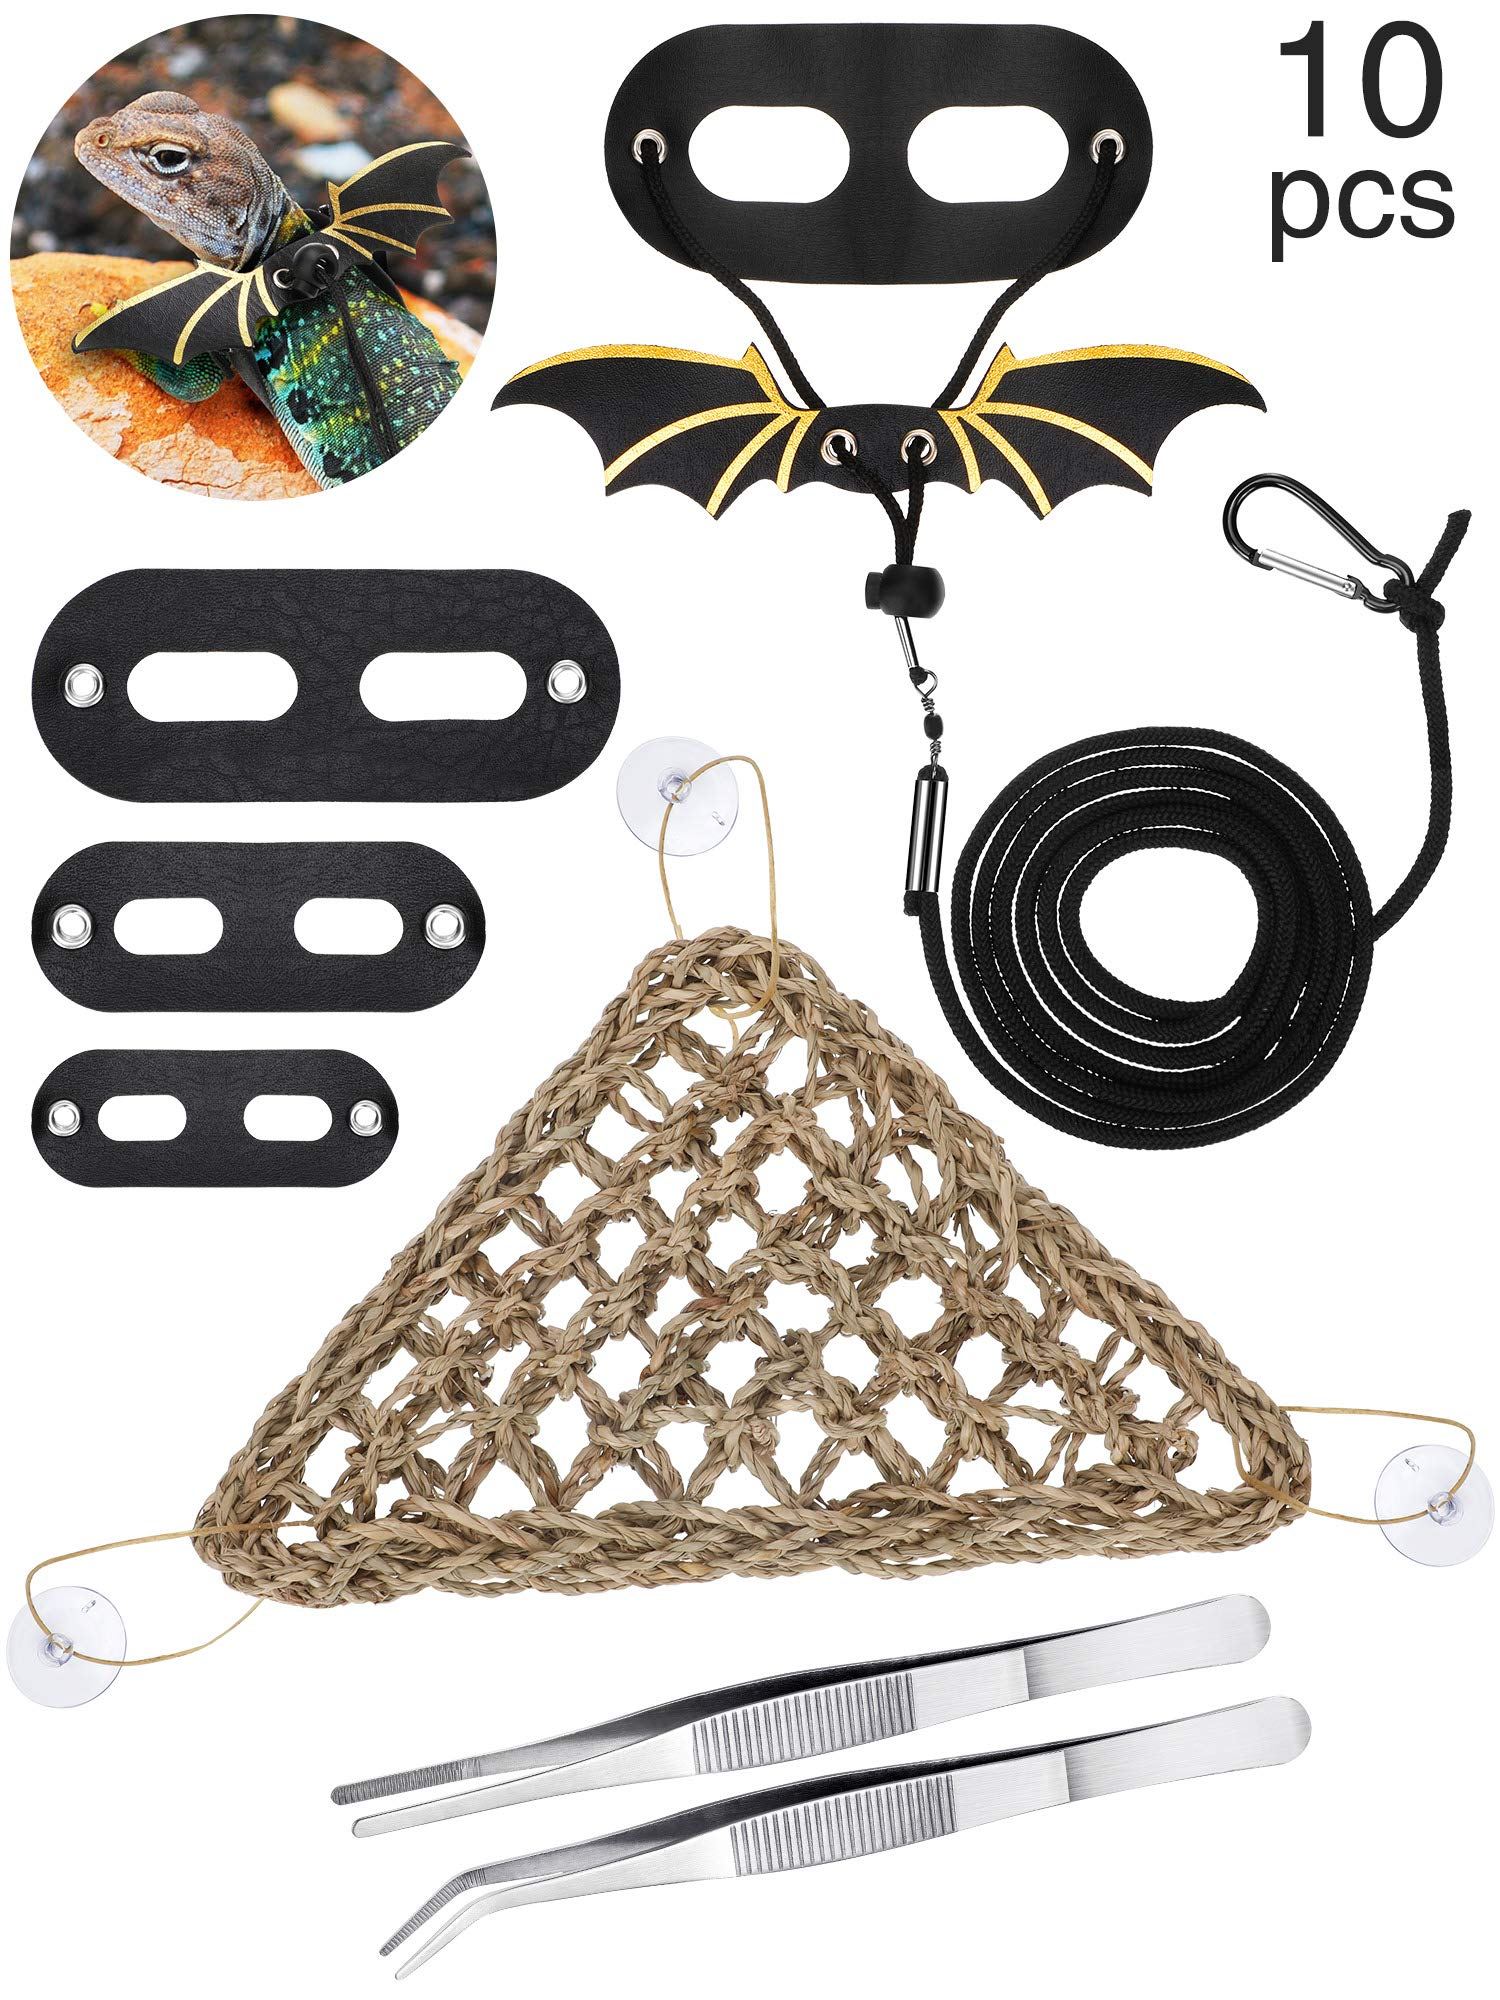 Bearded Dragon Hammock 3 Pieces Lizard Leash Adjustable Bearded Dragon Leather Harness with Rope, 2 Pieces Feeding Tweezers, 3 Pieces Suction Cup Hooks for Small, Medium and Large Reptiles, 10 Pieces by Boao